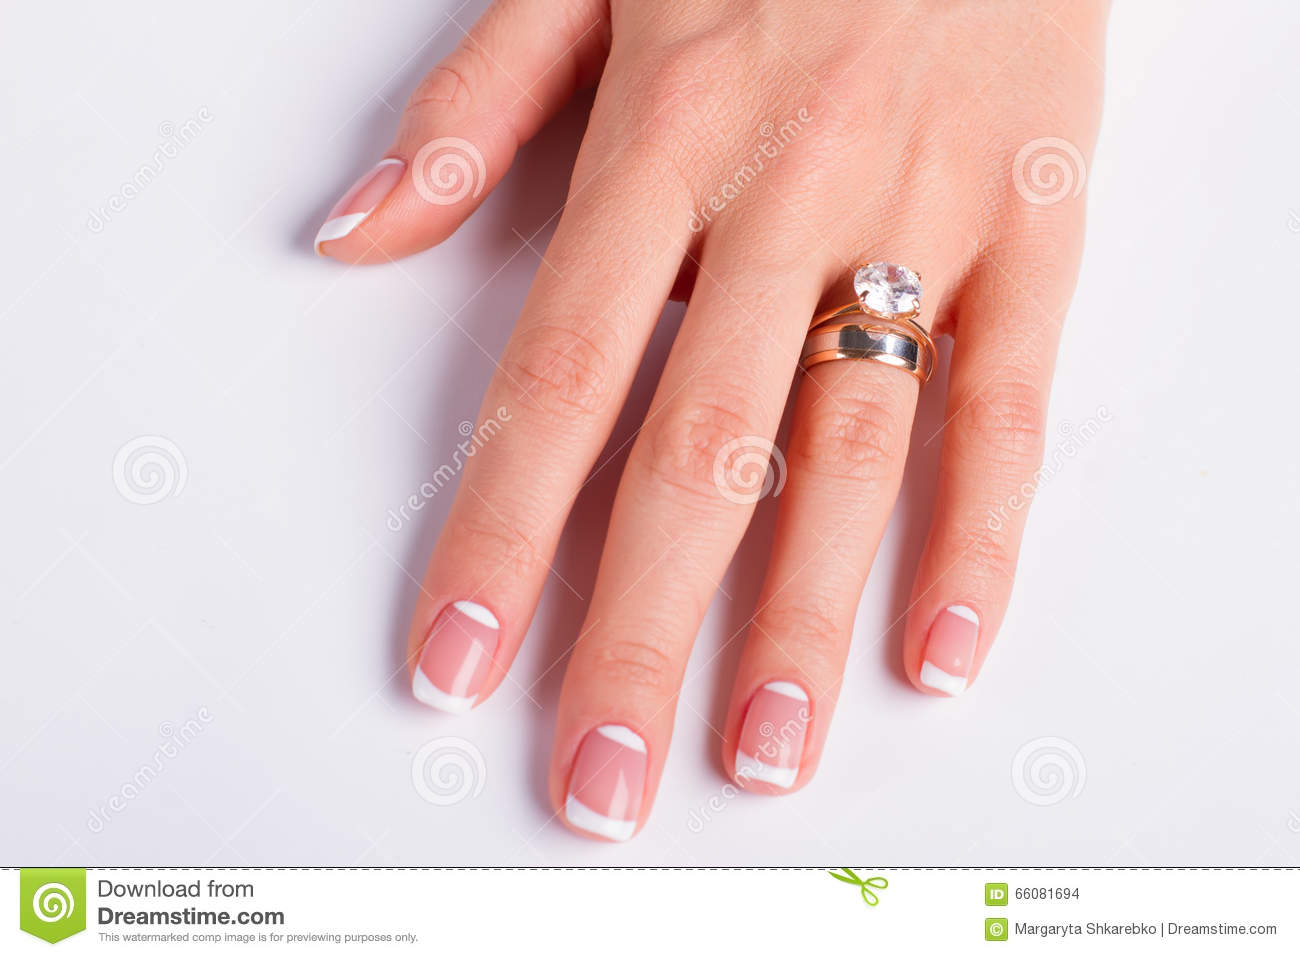 Diamond Ring And Wedding Ring On Woman\'s Finger. Stock Photo - Image ...